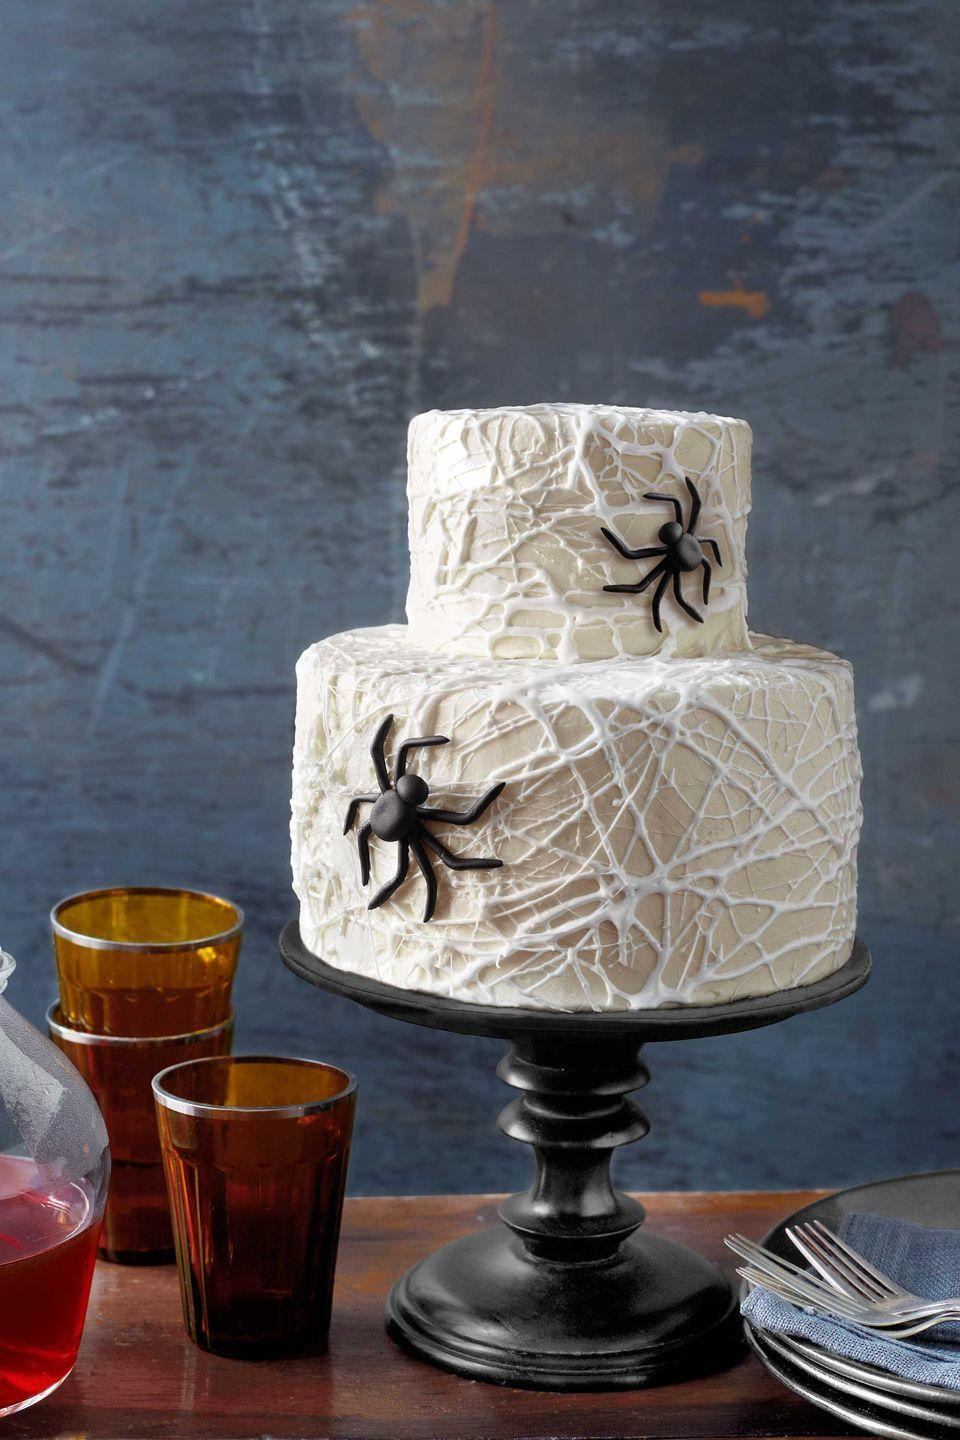 """<p>Weave a tangled web—from melted marshmallows—for this elegantly eerie dessert.</p><p><strong>Step 1: </strong>Prepare two boxes of cake mix (any flavor) per the package instructions. You'll need two round cake pans: one 4""""W x 4""""H; the other 7""""W x 4""""H.</p><p><em><em><em><em>Trace the base of one pan onto parchment; cut out and place in the bottom of that pan. Repeat for the other pan. Coat the inside of both pans, including parchment liners, with cooking spray.</em></em></em><br></em></p><p><strong><strong>Step 2:</strong> </strong>Apportion cake batter between pans. In a 350°F oven, bake the smaller cake for 25 to 30 minutes and the larger cake for 45 to 50 minutes. Let cool.</p><p><strong>Step 3:</strong> Level the top of each cake. Frost the top of the larger cake with white buttercream. Then center the smaller cake atop it. Frost the entire two-tiered cake.</p><p><strong>Step 4:</strong> Microwave eight ounces of marshmallows in a bowl for 30 seconds, until gooey but still lumpy. Stir until smooth and cool enough to handle. Pinch off a bit of marshmallow; stretch to create a long, thin strand; and drape it onto the cake. Repeat, applying strands until the entire cake is covered in """"webbing.""""</p><p><strong>Step 5:</strong> To make the spiders, you'll need black fondant. Use your hands to shape one 1½-inch ball and nine ½-inch ones. Partially flatten the tops of the large ball and one small one; then use a drop of water to attach them, creating the head and body. Roll the remaining balls into long tubes for the legs, bend in the middle, and attach, using a drop of water for each, to the body, as shown. Repeat, using slightly smaller balls, to create a second spider. </p><p><strong><a href=""""https://www.countryliving.com/food-drinks/recipes/a1568/circus-tent-frosting-3678/"""" rel=""""nofollow noopener"""" target=""""_blank"""" data-ylk=""""slk:Get recipe for buttercream"""" class=""""link rapid-noclick-resp"""">Get recipe for buttercream</a>.</strong></p>"""